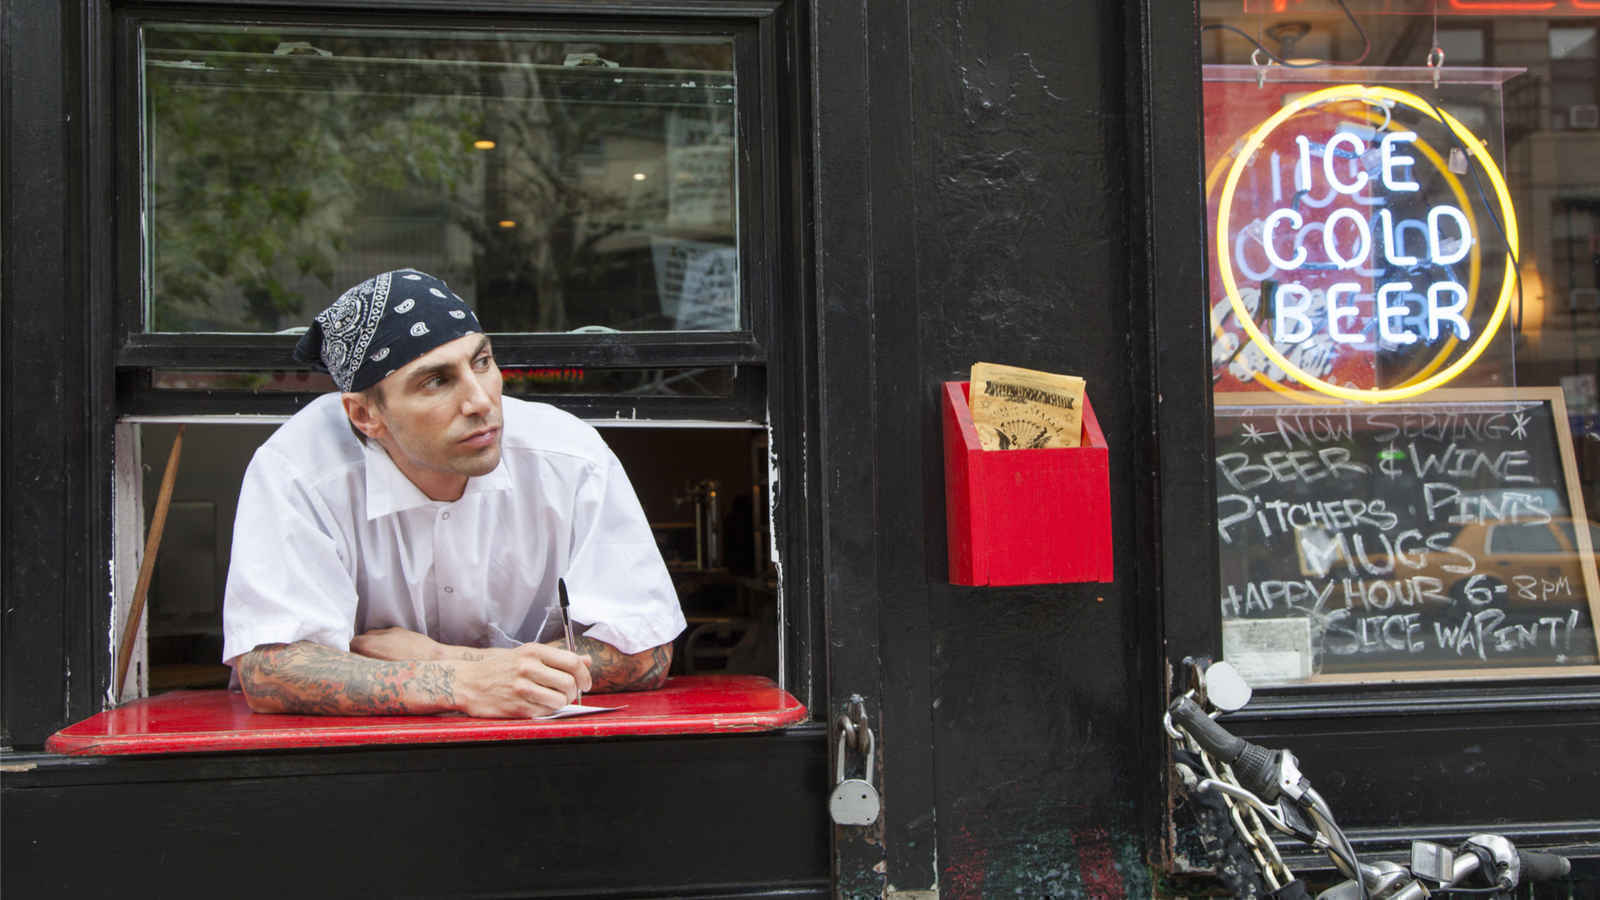 Pizza chef at his East Village pizzeria